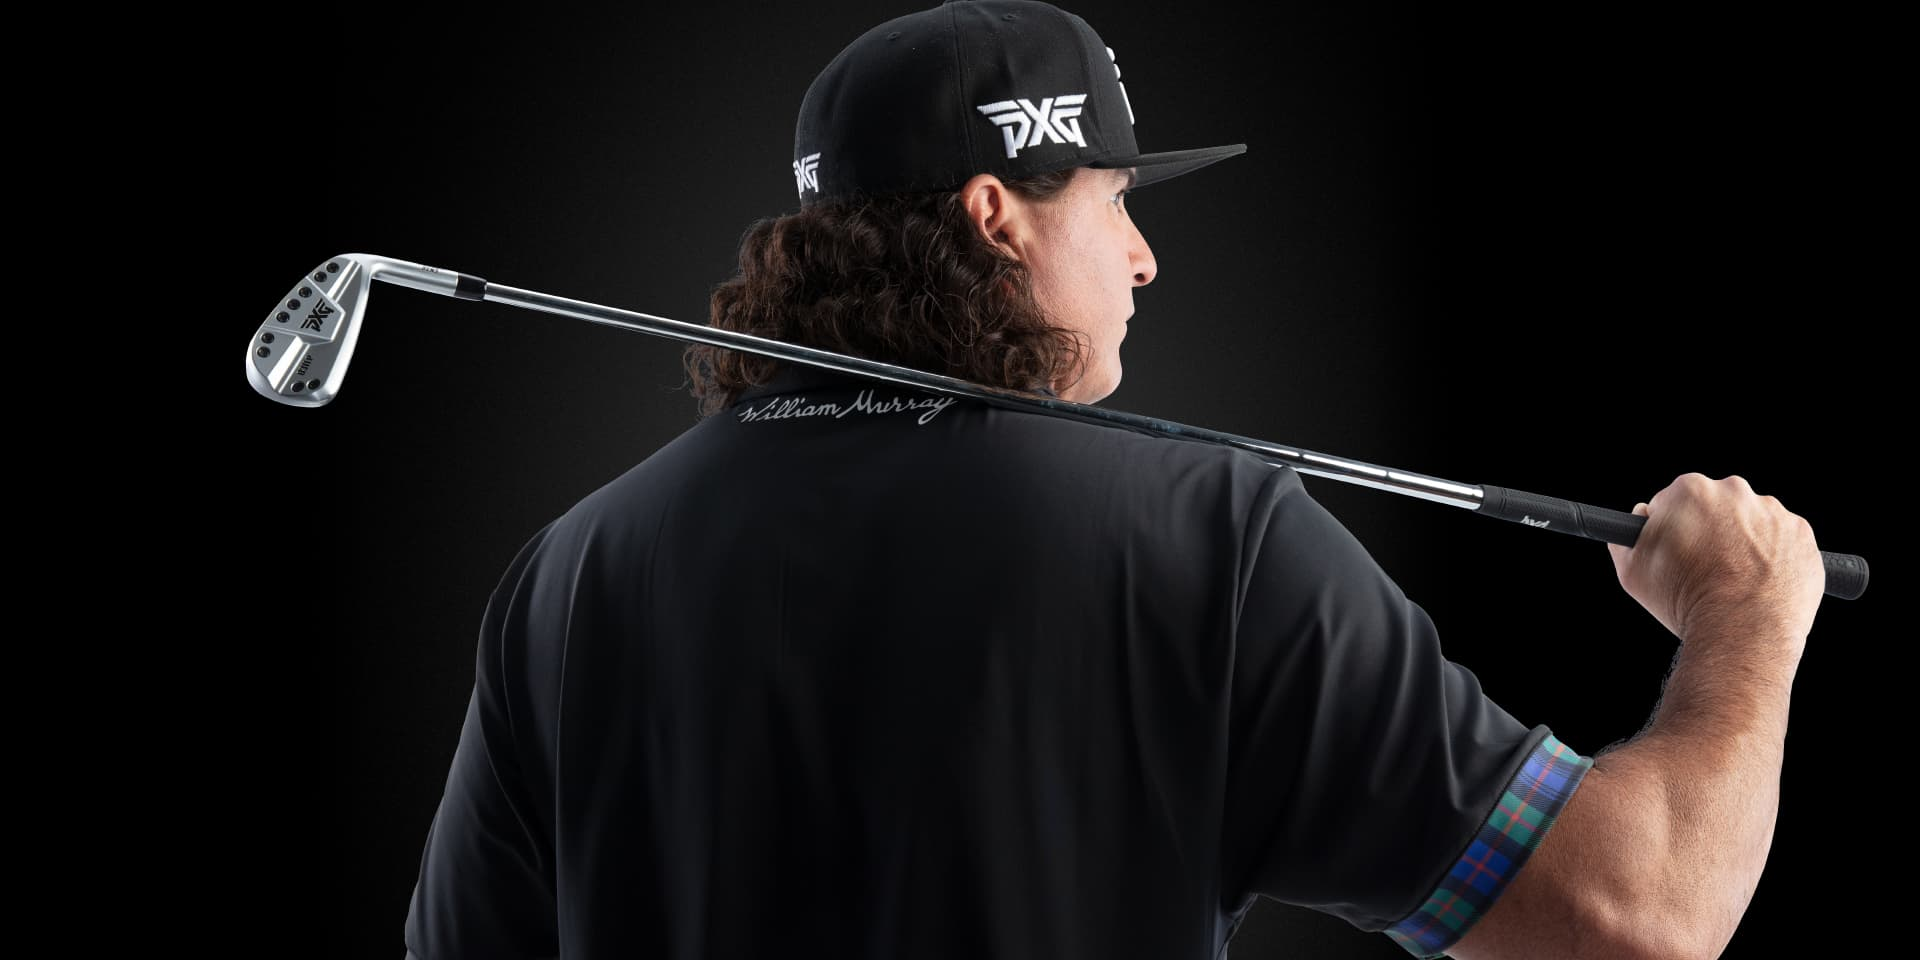 William Murray with PXG GEN3 Iron